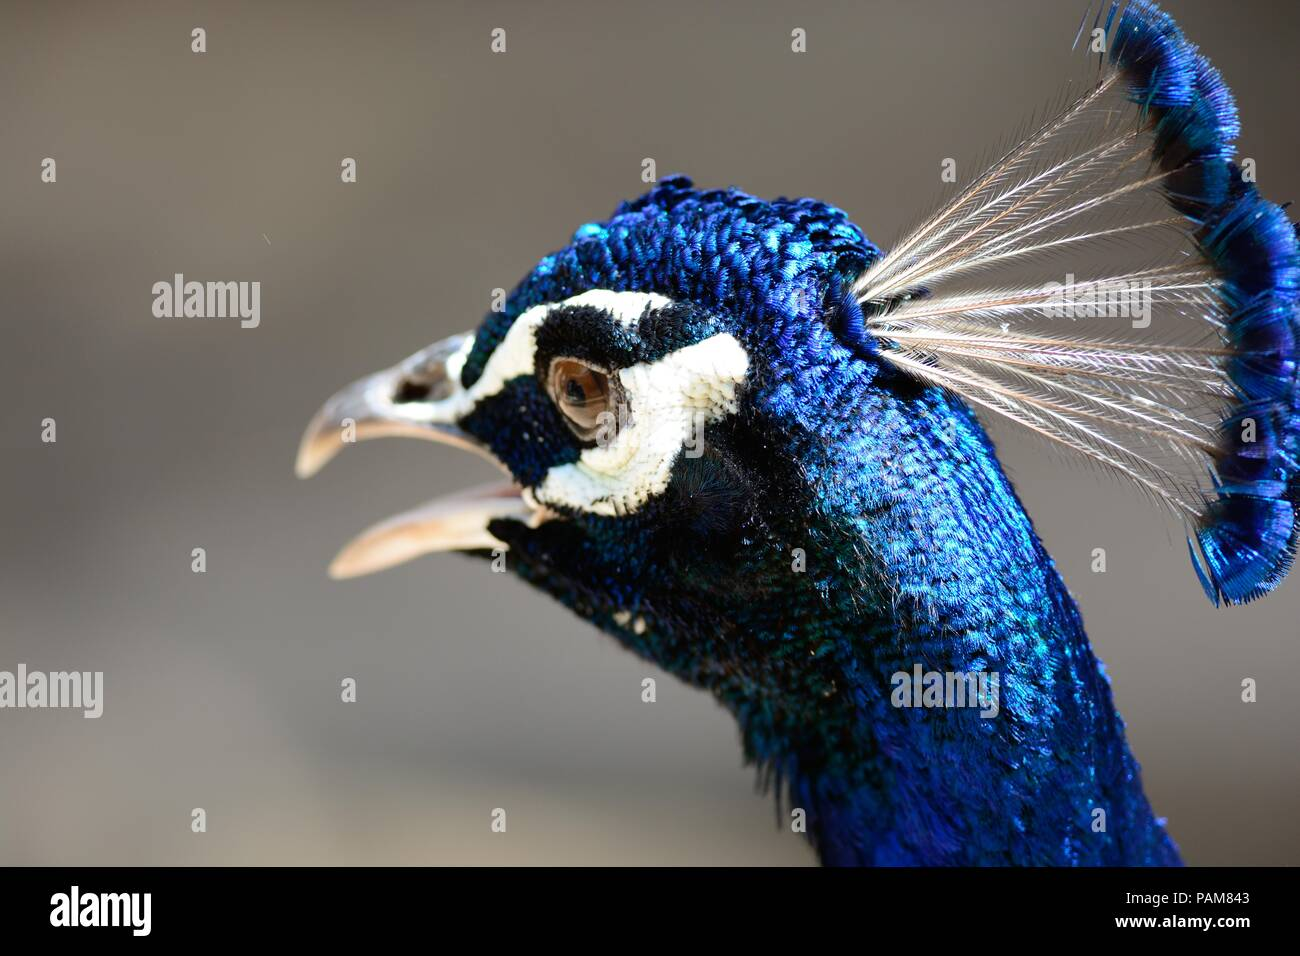 Close uphead shot of a peacock - Stock Image